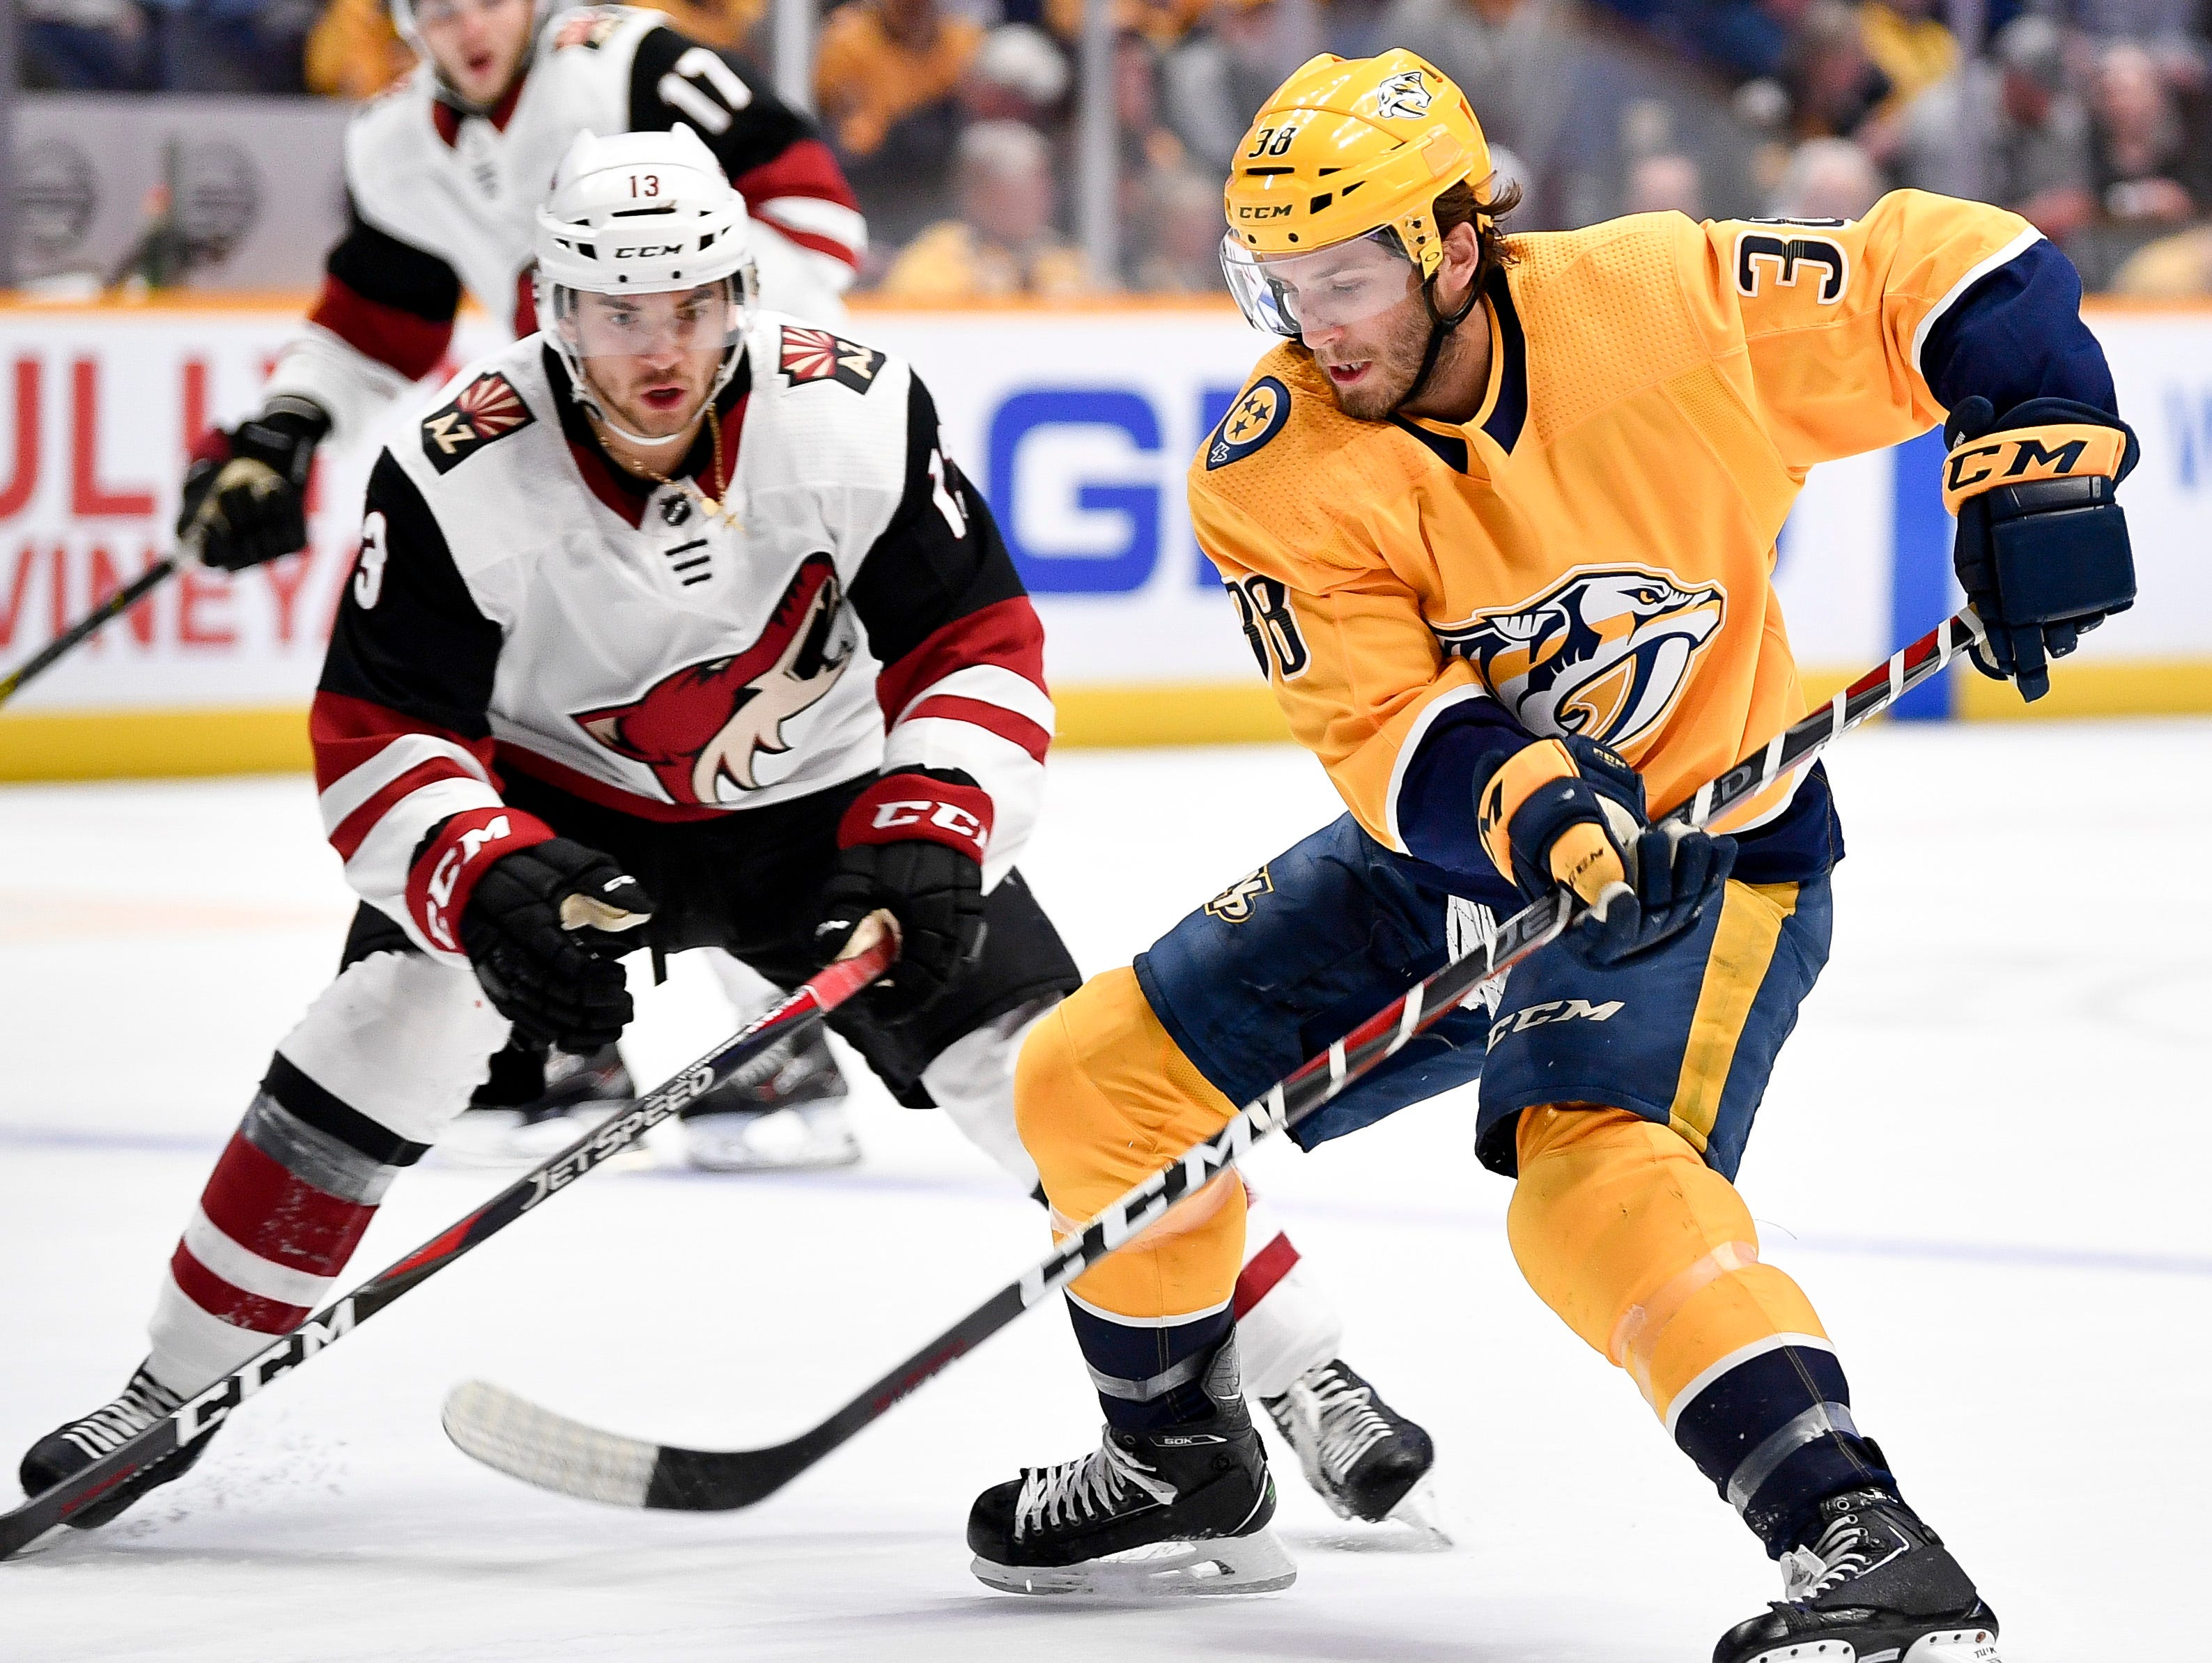 Nashville Predators right wing Ryan Hartman (38) battles Arizona Coyotes center Vinnie Hinostroza (13) during the first period at Bridgestone Arena in Nashville, Tenn., Tuesday, Feb. 5, 2019.